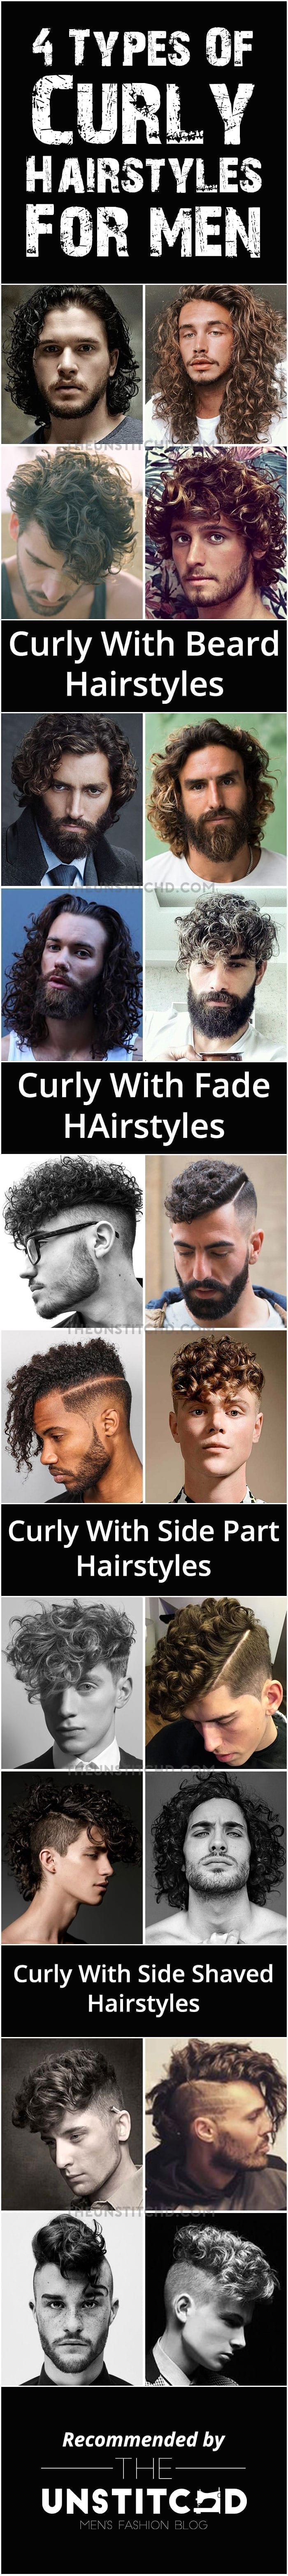 Curly-Hairstyle-